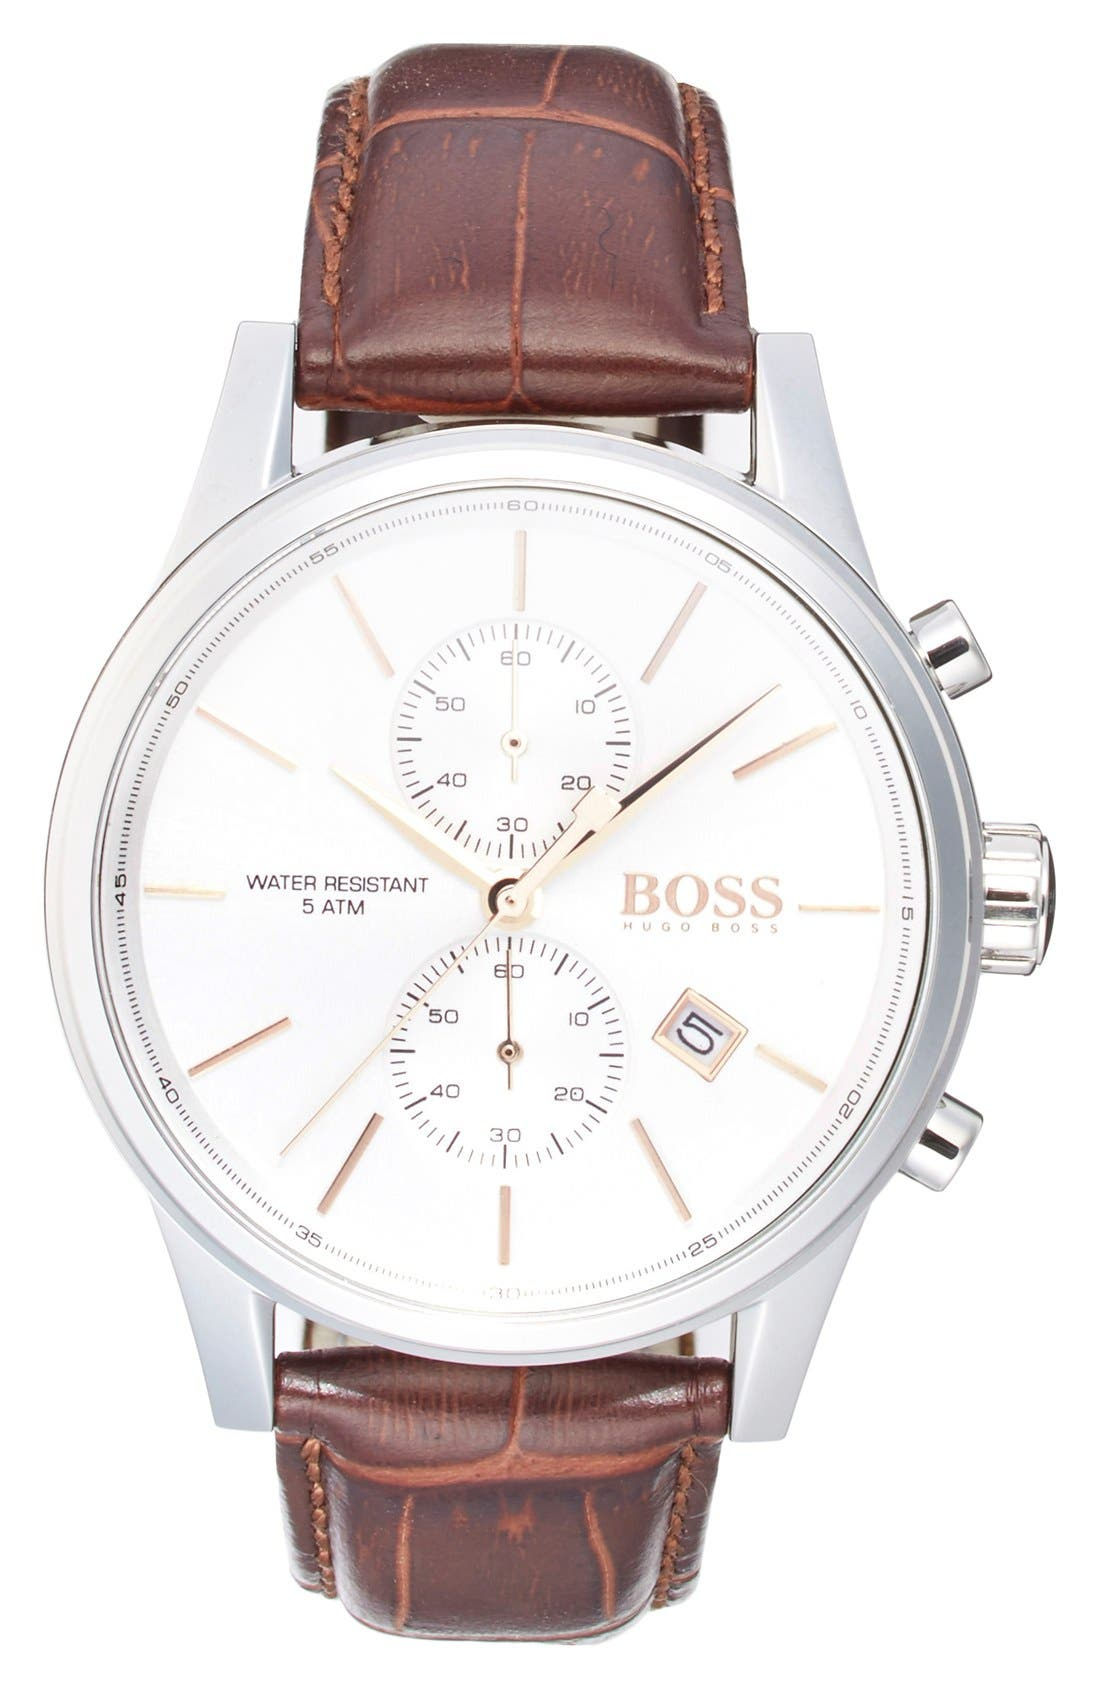 BOSS, 'Jet Sport' Chronograph Leather Strap Watch, 41mm, Main thumbnail 1, color, WHITE/ BROWN